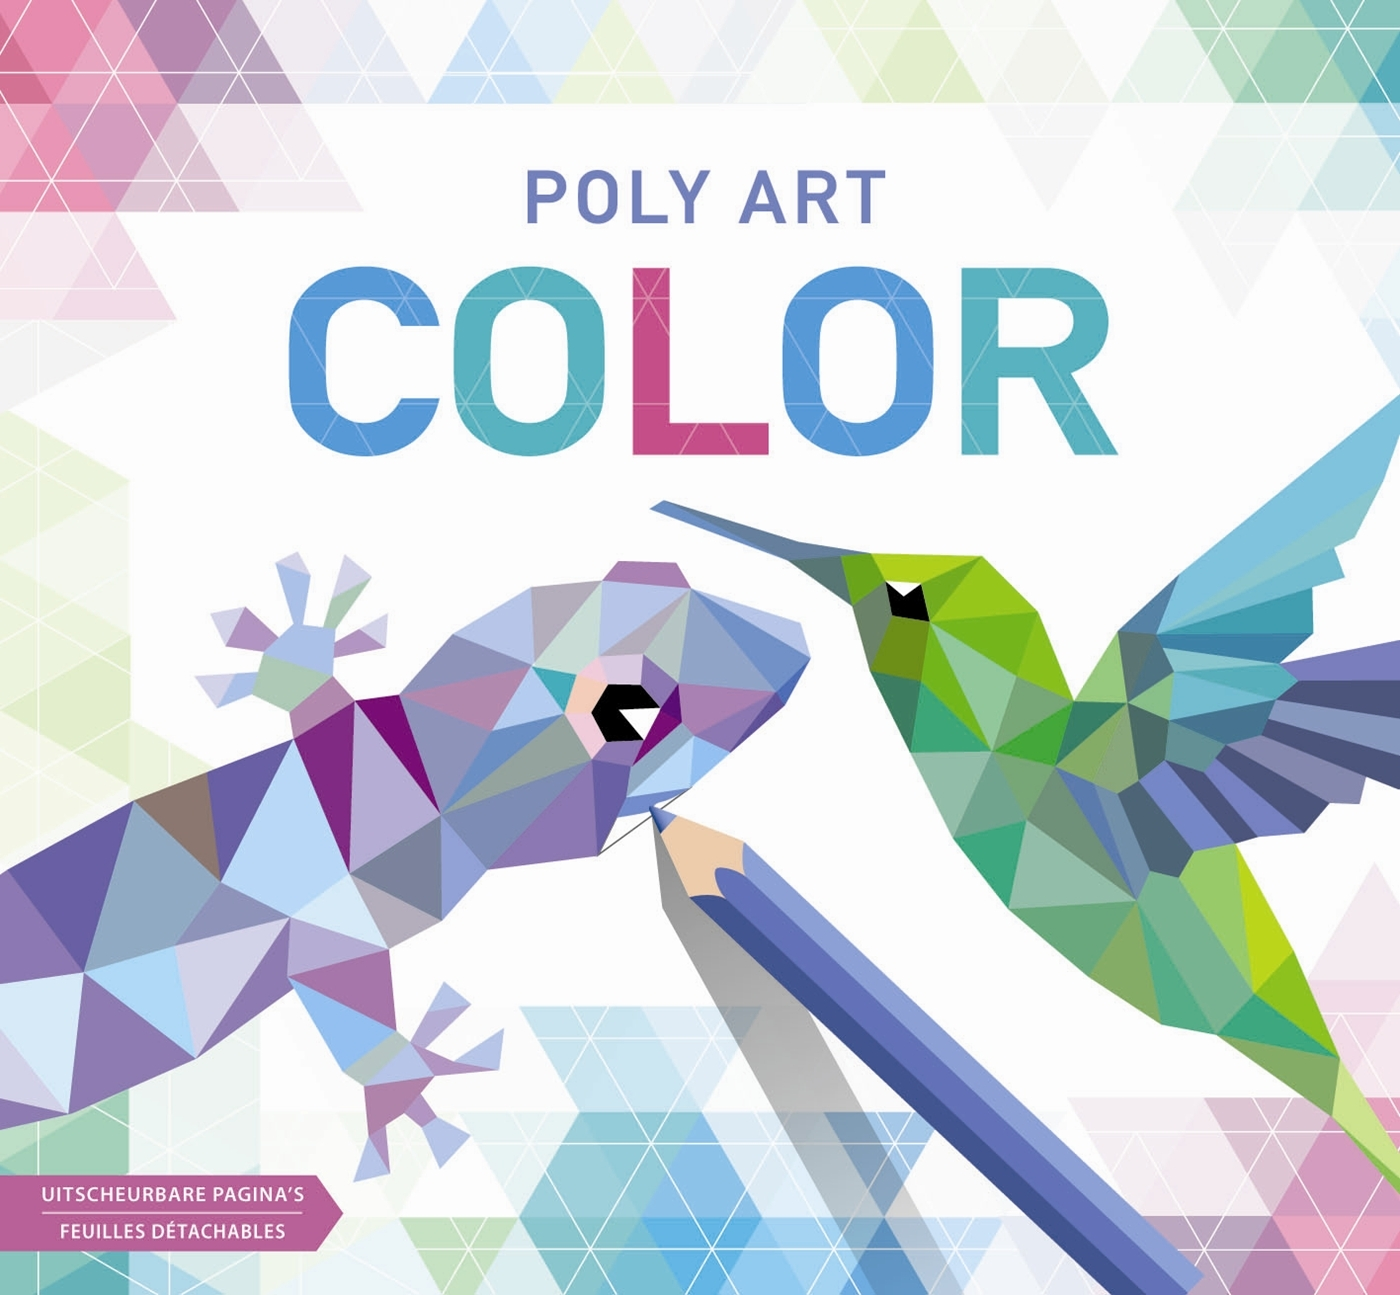 POLY ART COLOR